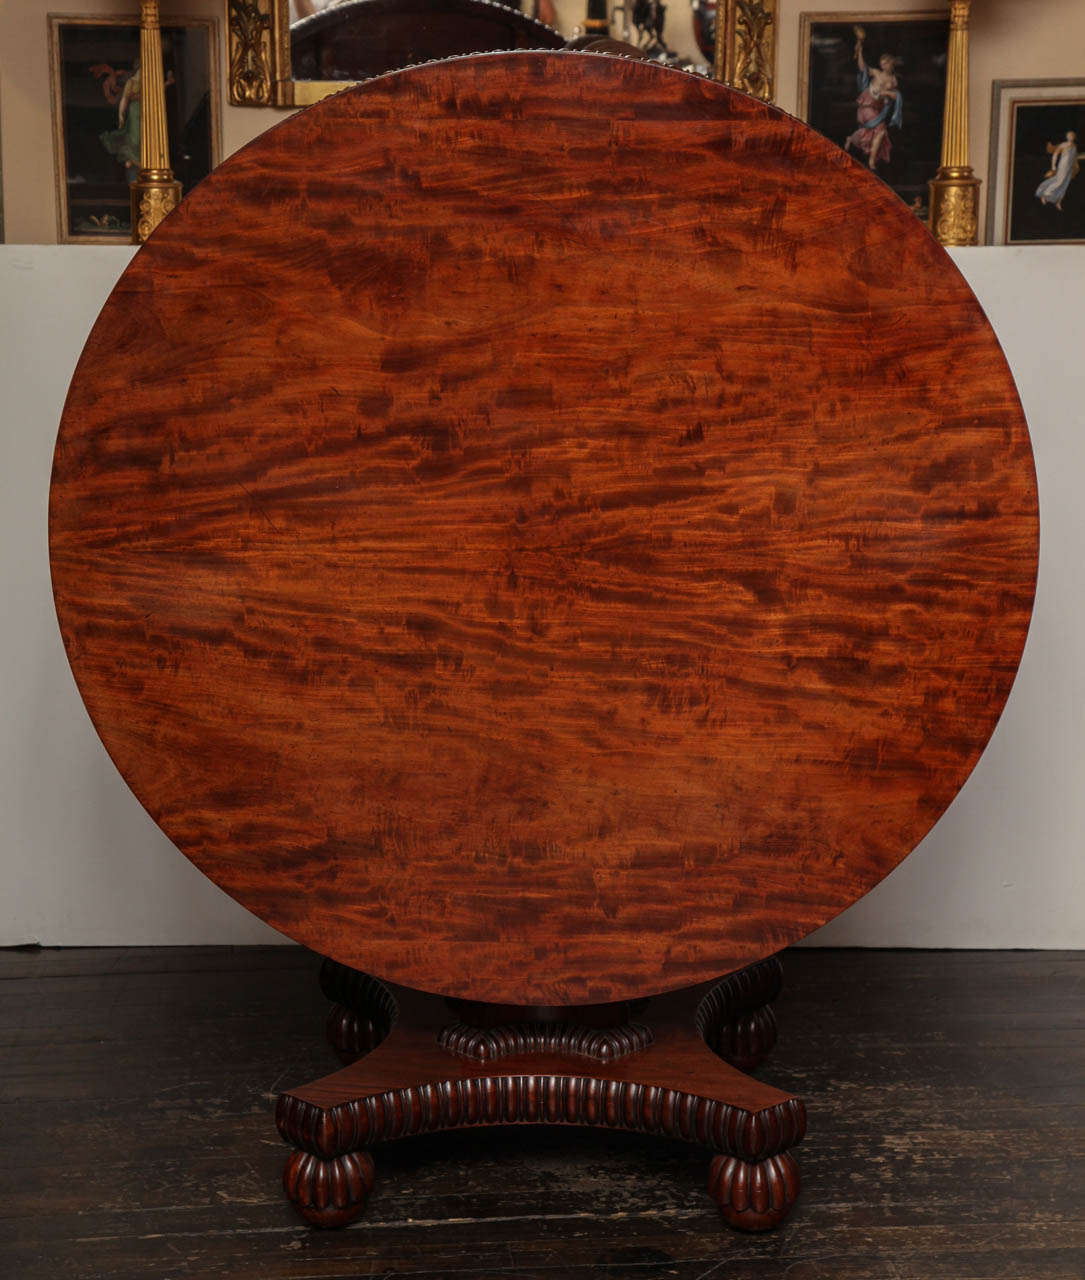 Exceptional george iv center table at 1stdibs for 123 william street 19th floor new york ny 10038